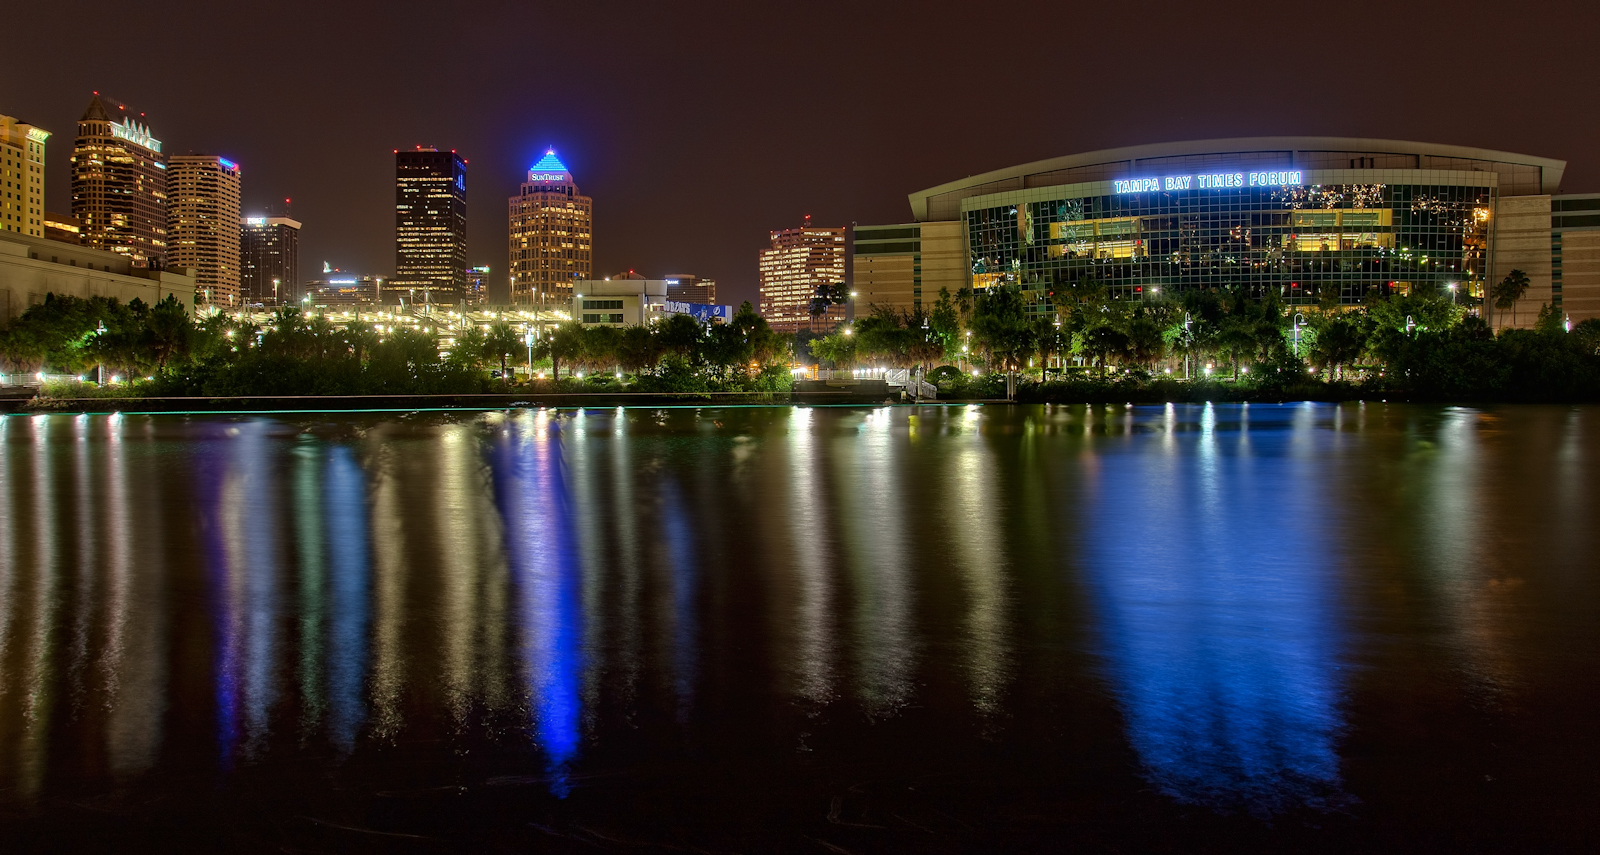 Tampa Bay Times Forum and Plant Museum